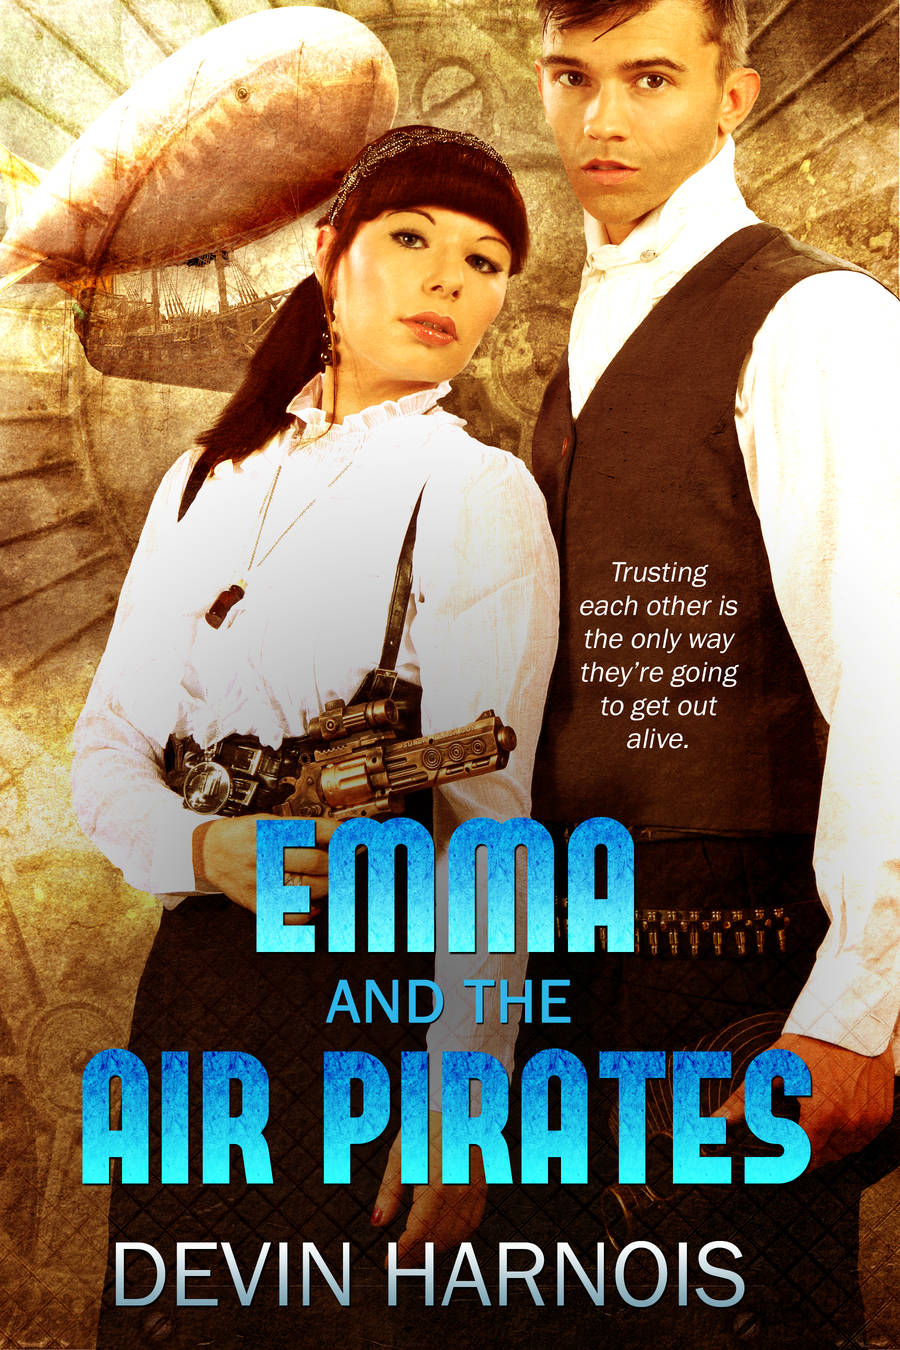 book_cover___emma_and_the_air_pirates_by_razzledazzledesign_d582ew1-fullview